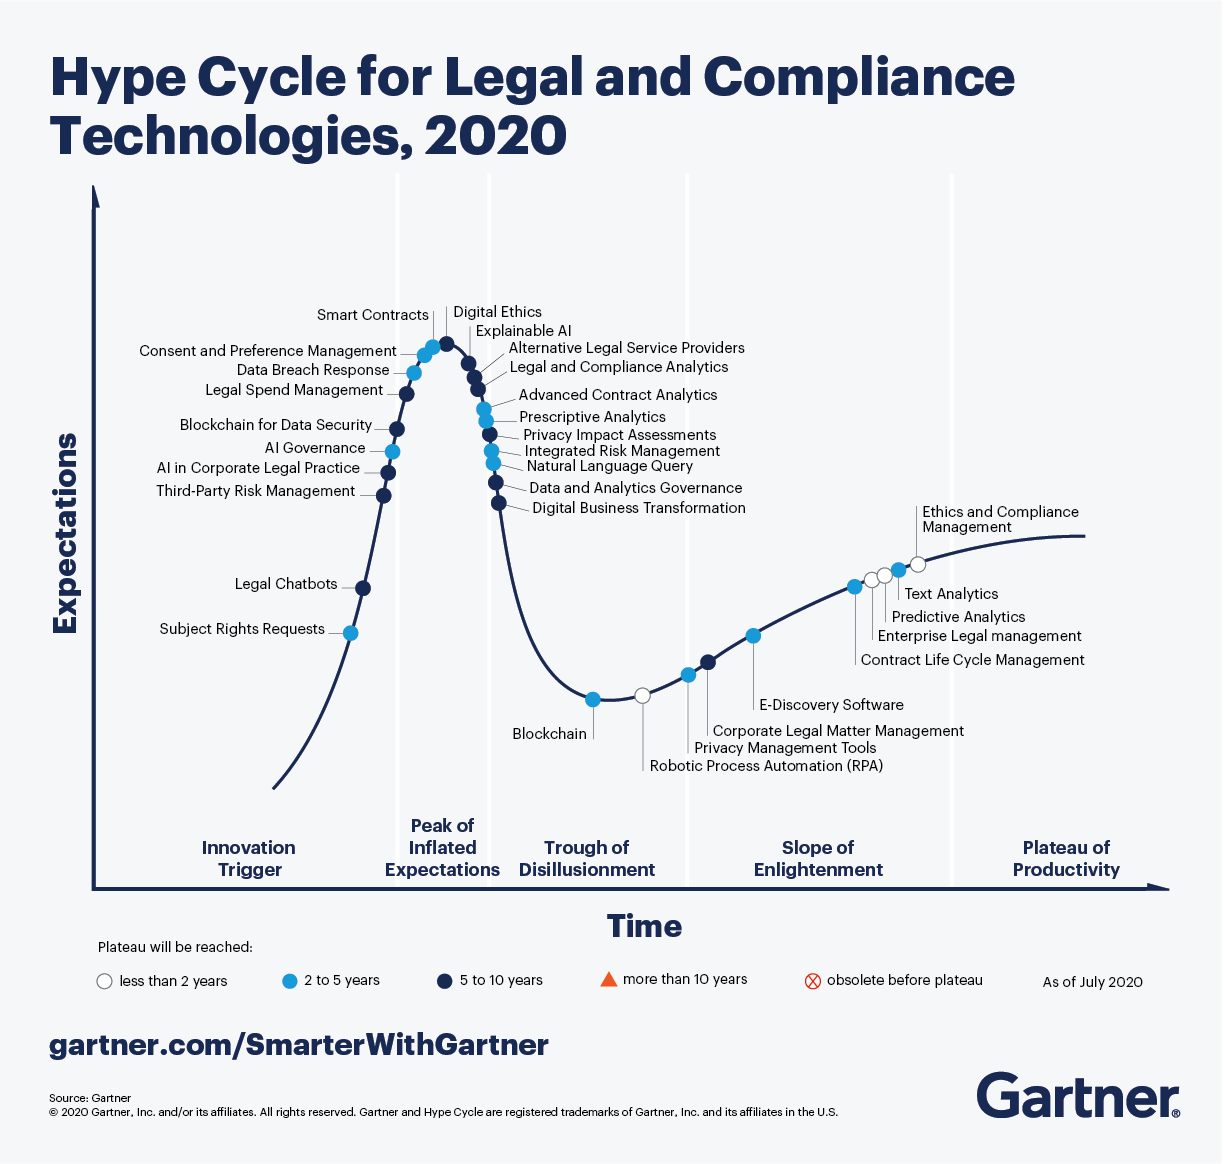 The Gartner Hype Cycle for Legal & Compliance Technologies, 2020 shows predictive analytics and enterprise legal management to be technologies with high potential benefits in the early mainstream phase and within 2 years of reaching the plateau of productivity.